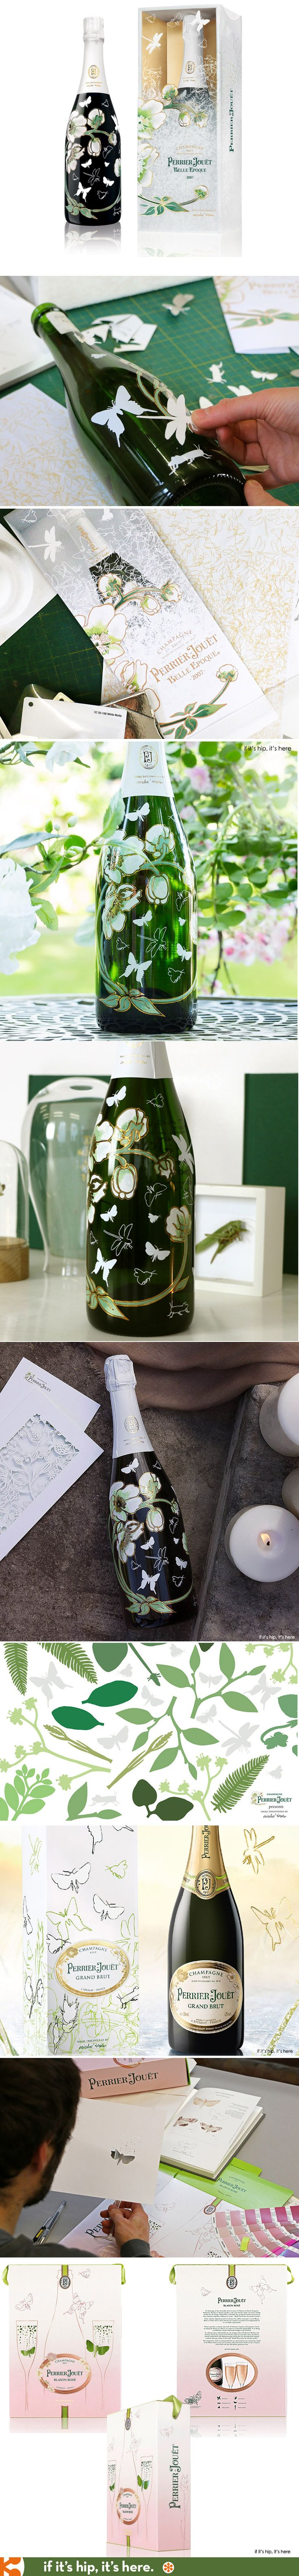 mischer'traxler studio's bottle and packaging for Perrier Jouet's Vintage 2007…